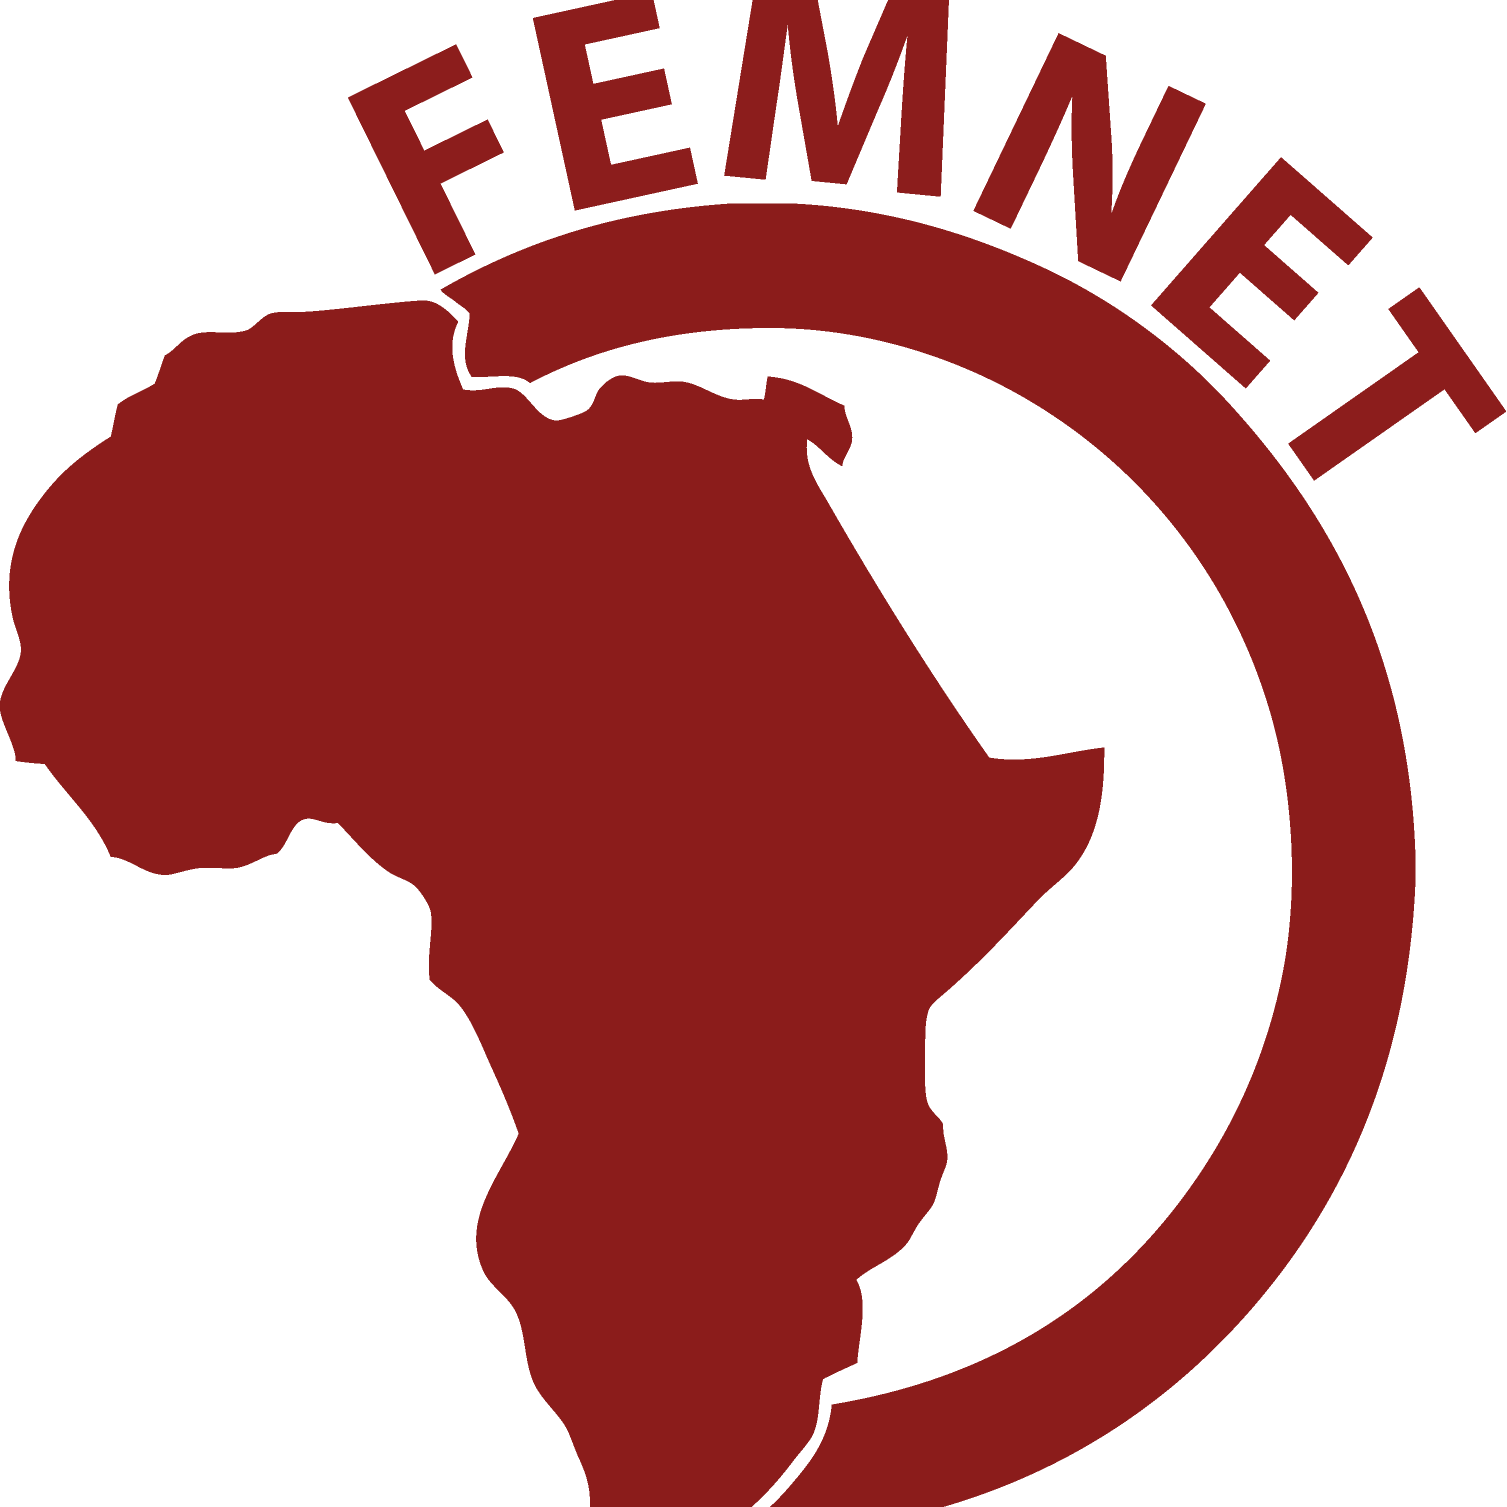 FEMNET – the African Women's Development and Communication Network